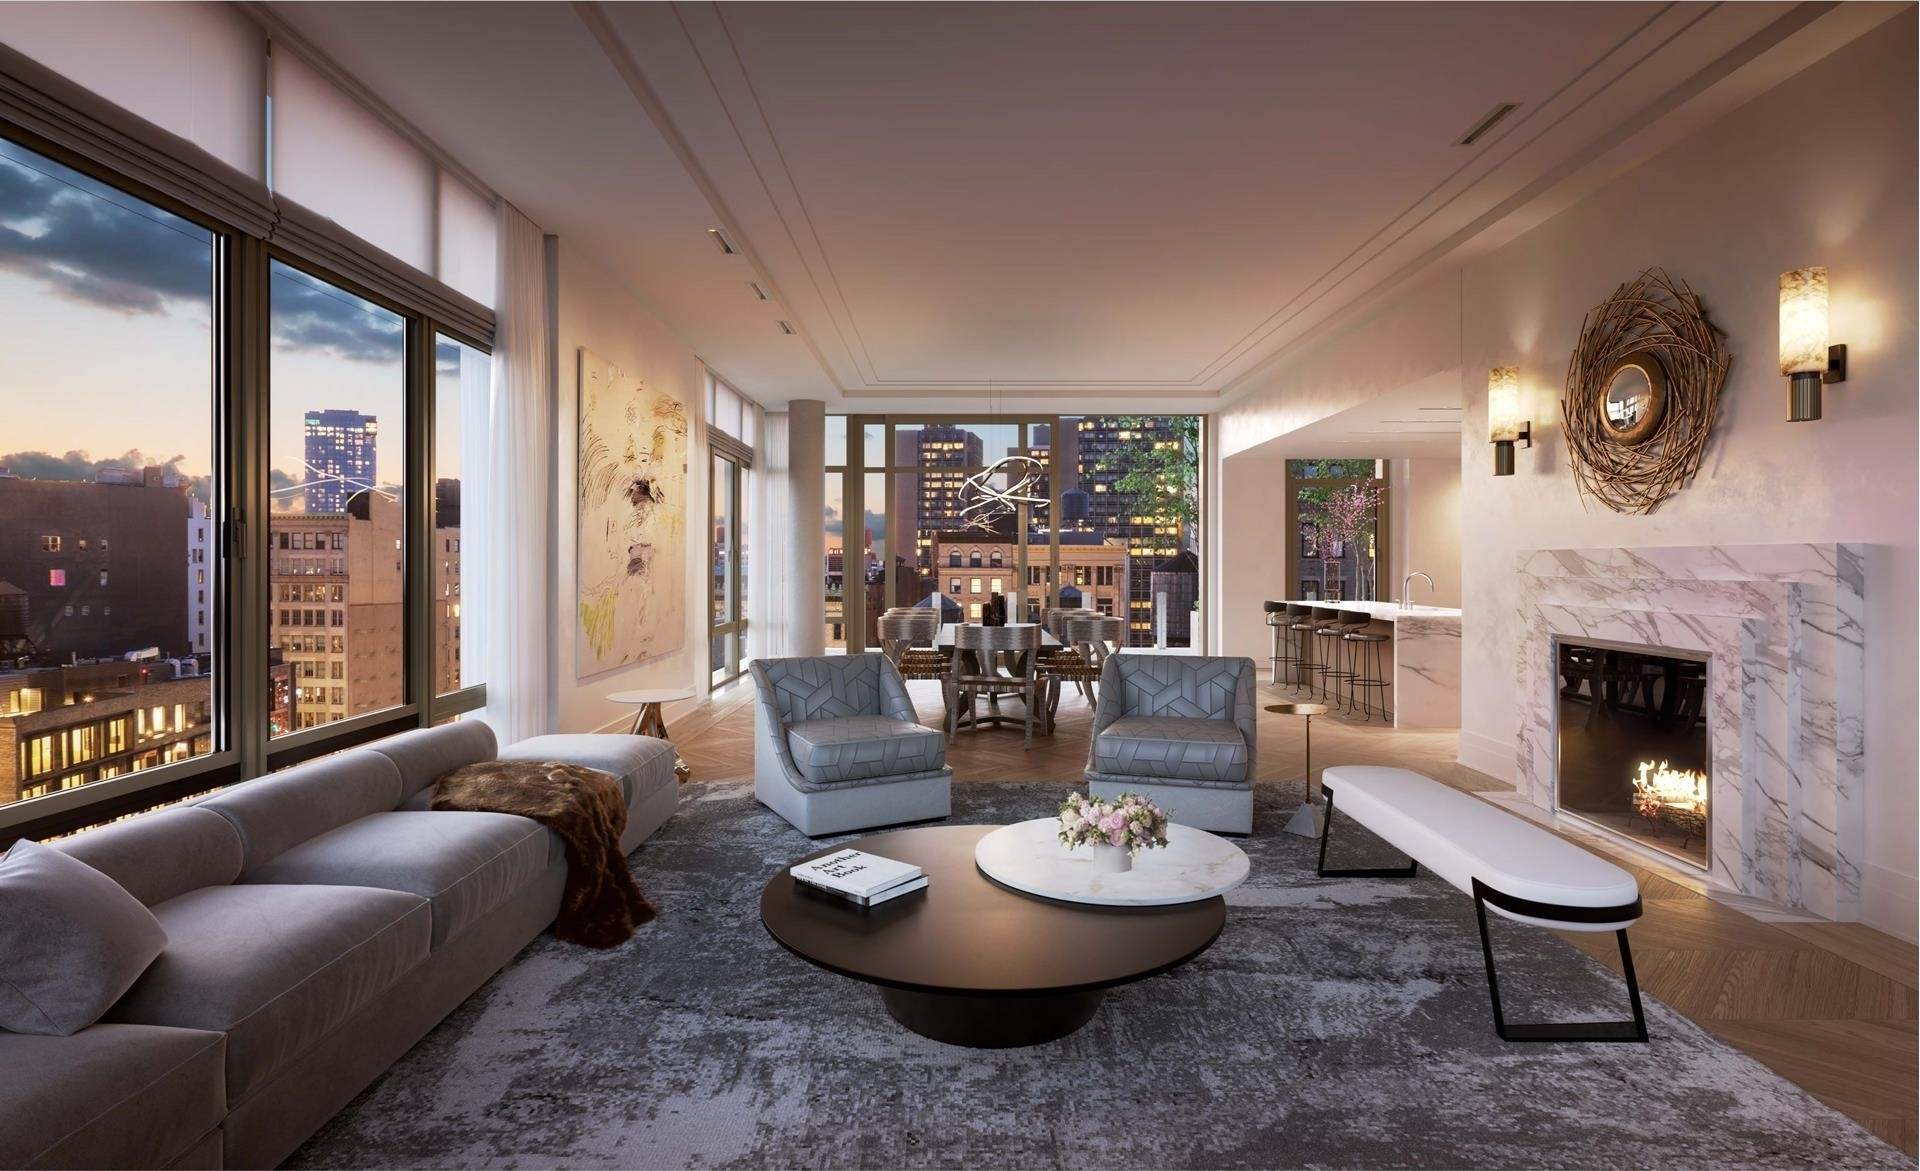 Property at 40 Bleecker St, PHE NoHo, New York, NY 10012